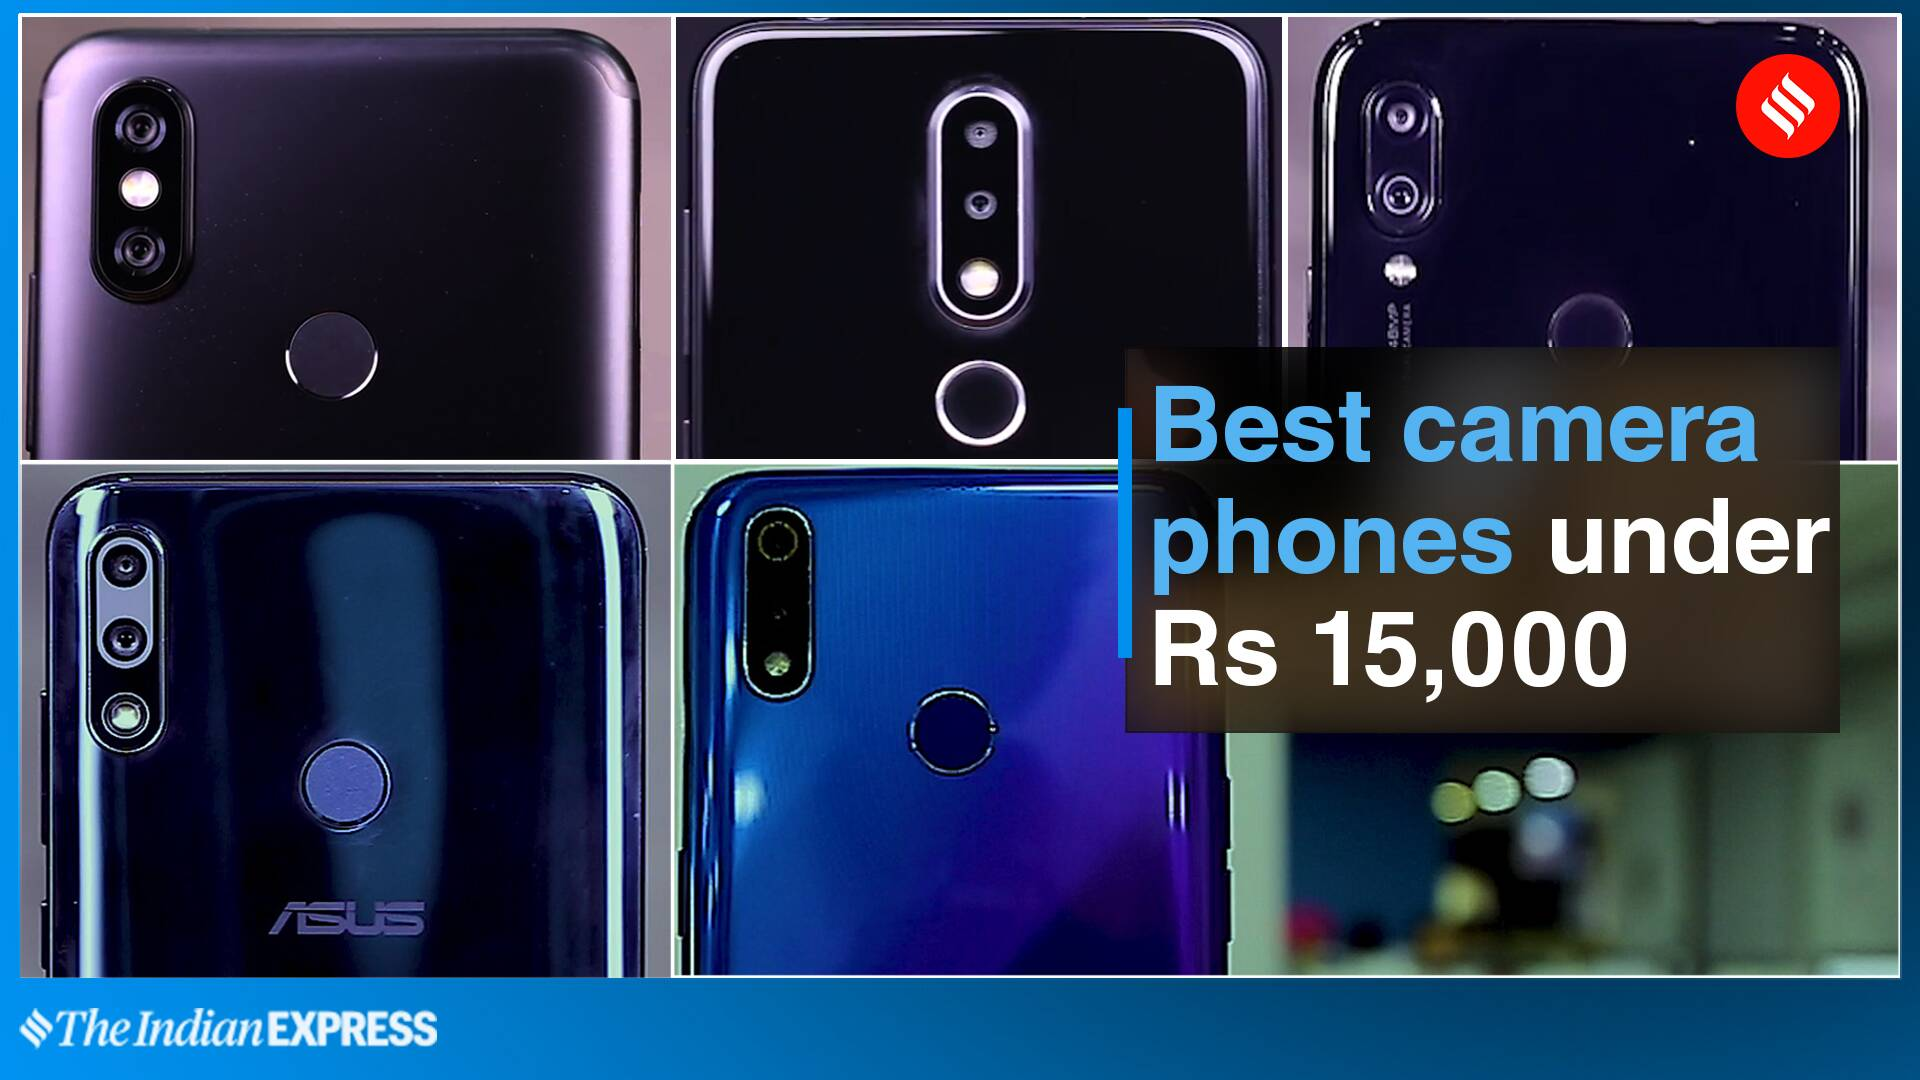 Best Camera Phones Under Rs 15,000: Redmi Note 7 Pro, Realme 3 Pro And More